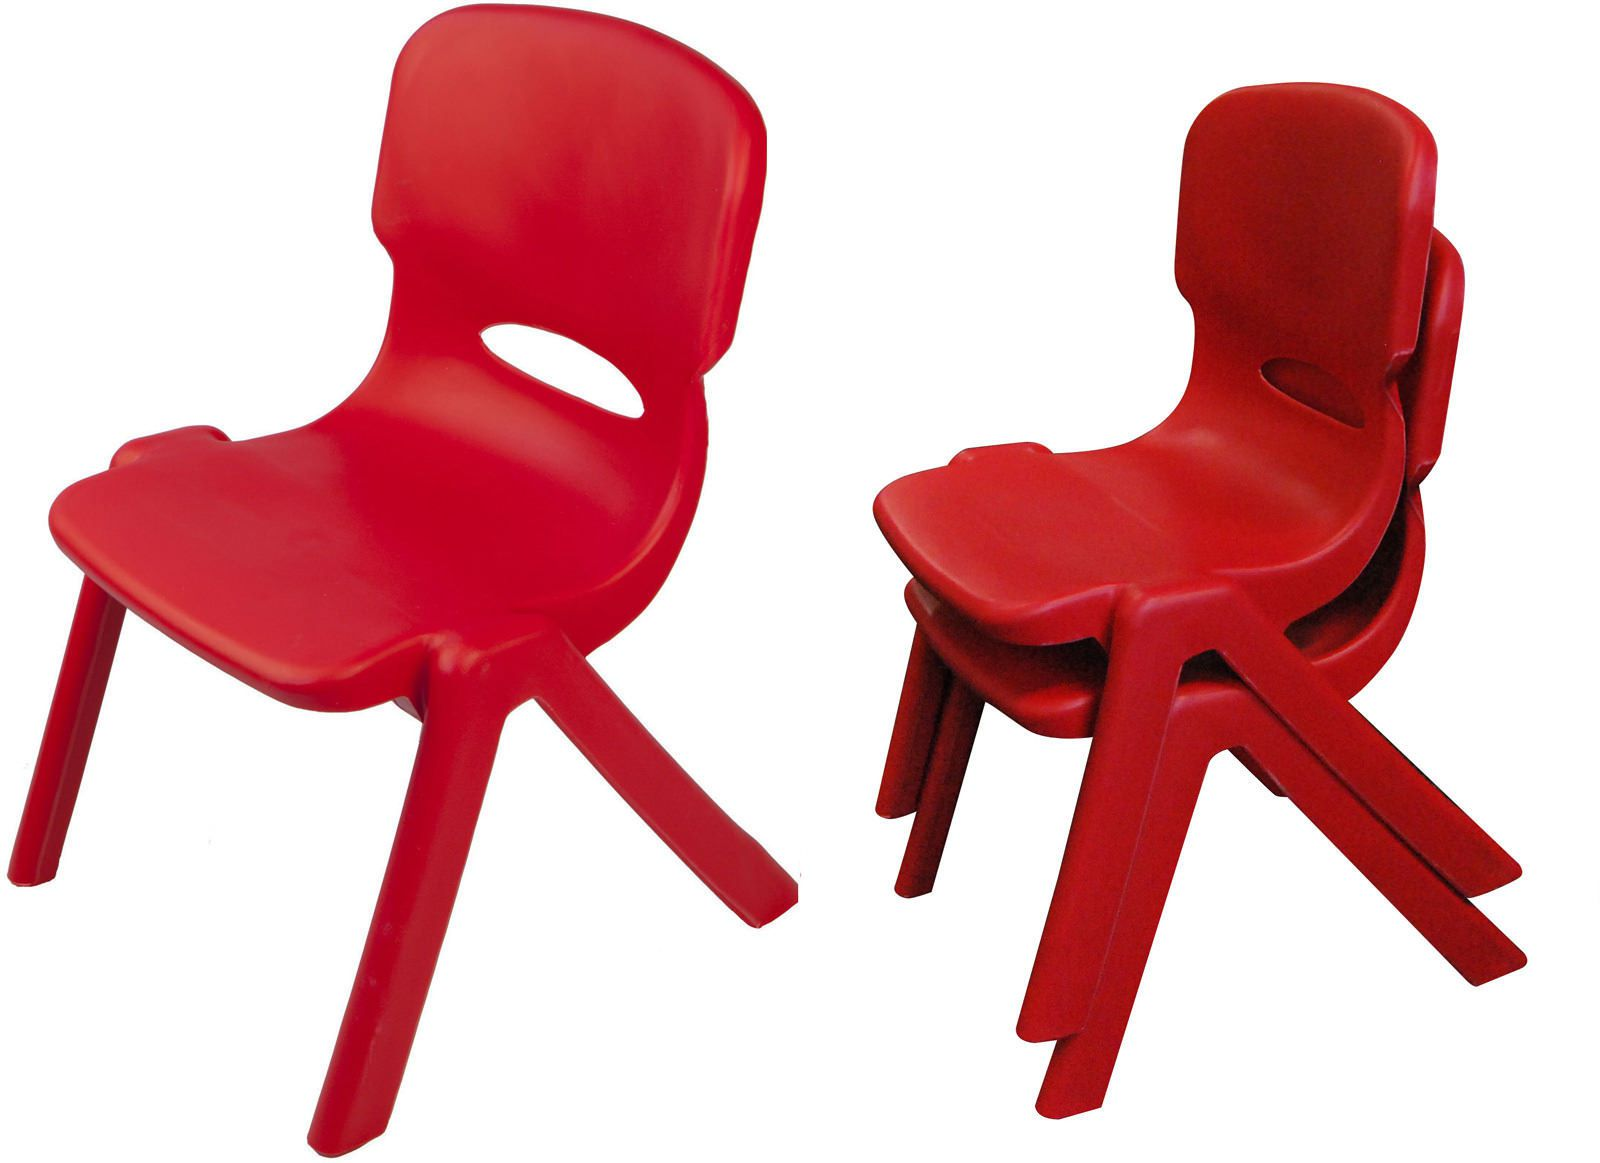 Childrens Chairs  Kids Chairs  Set of 2 RED Plastic